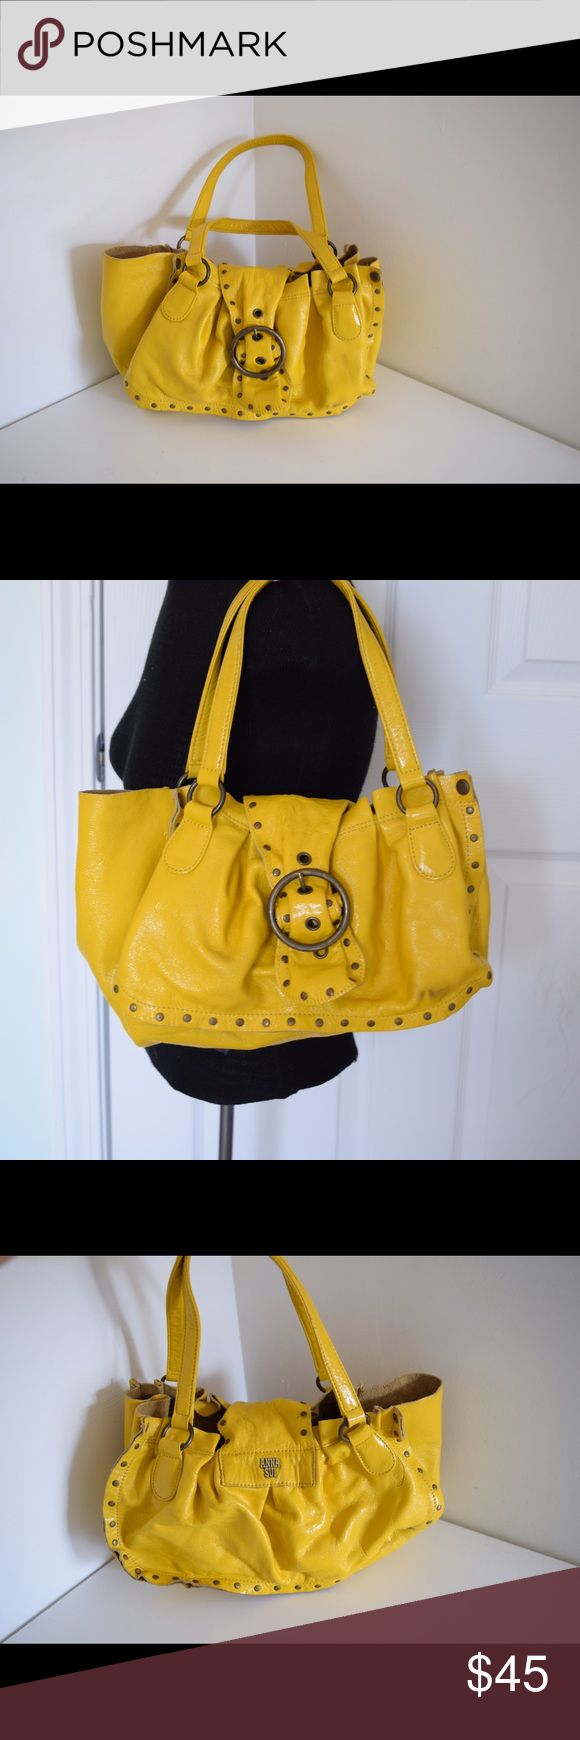 "Ann Sui leather shoulder bag studded Anna Sui studded leather tote bag Measures 14"" x 9"" shoulder drop 9"". Snap closure. Leather in yellow (almost mustard color). Brass tone studs. Anna Sui logo Inside has ink marks (pic). Outside has one ink mark on back & one on front (pics). Beautiful bag. $200 new Anna Sui Bags Shoulder Bags"